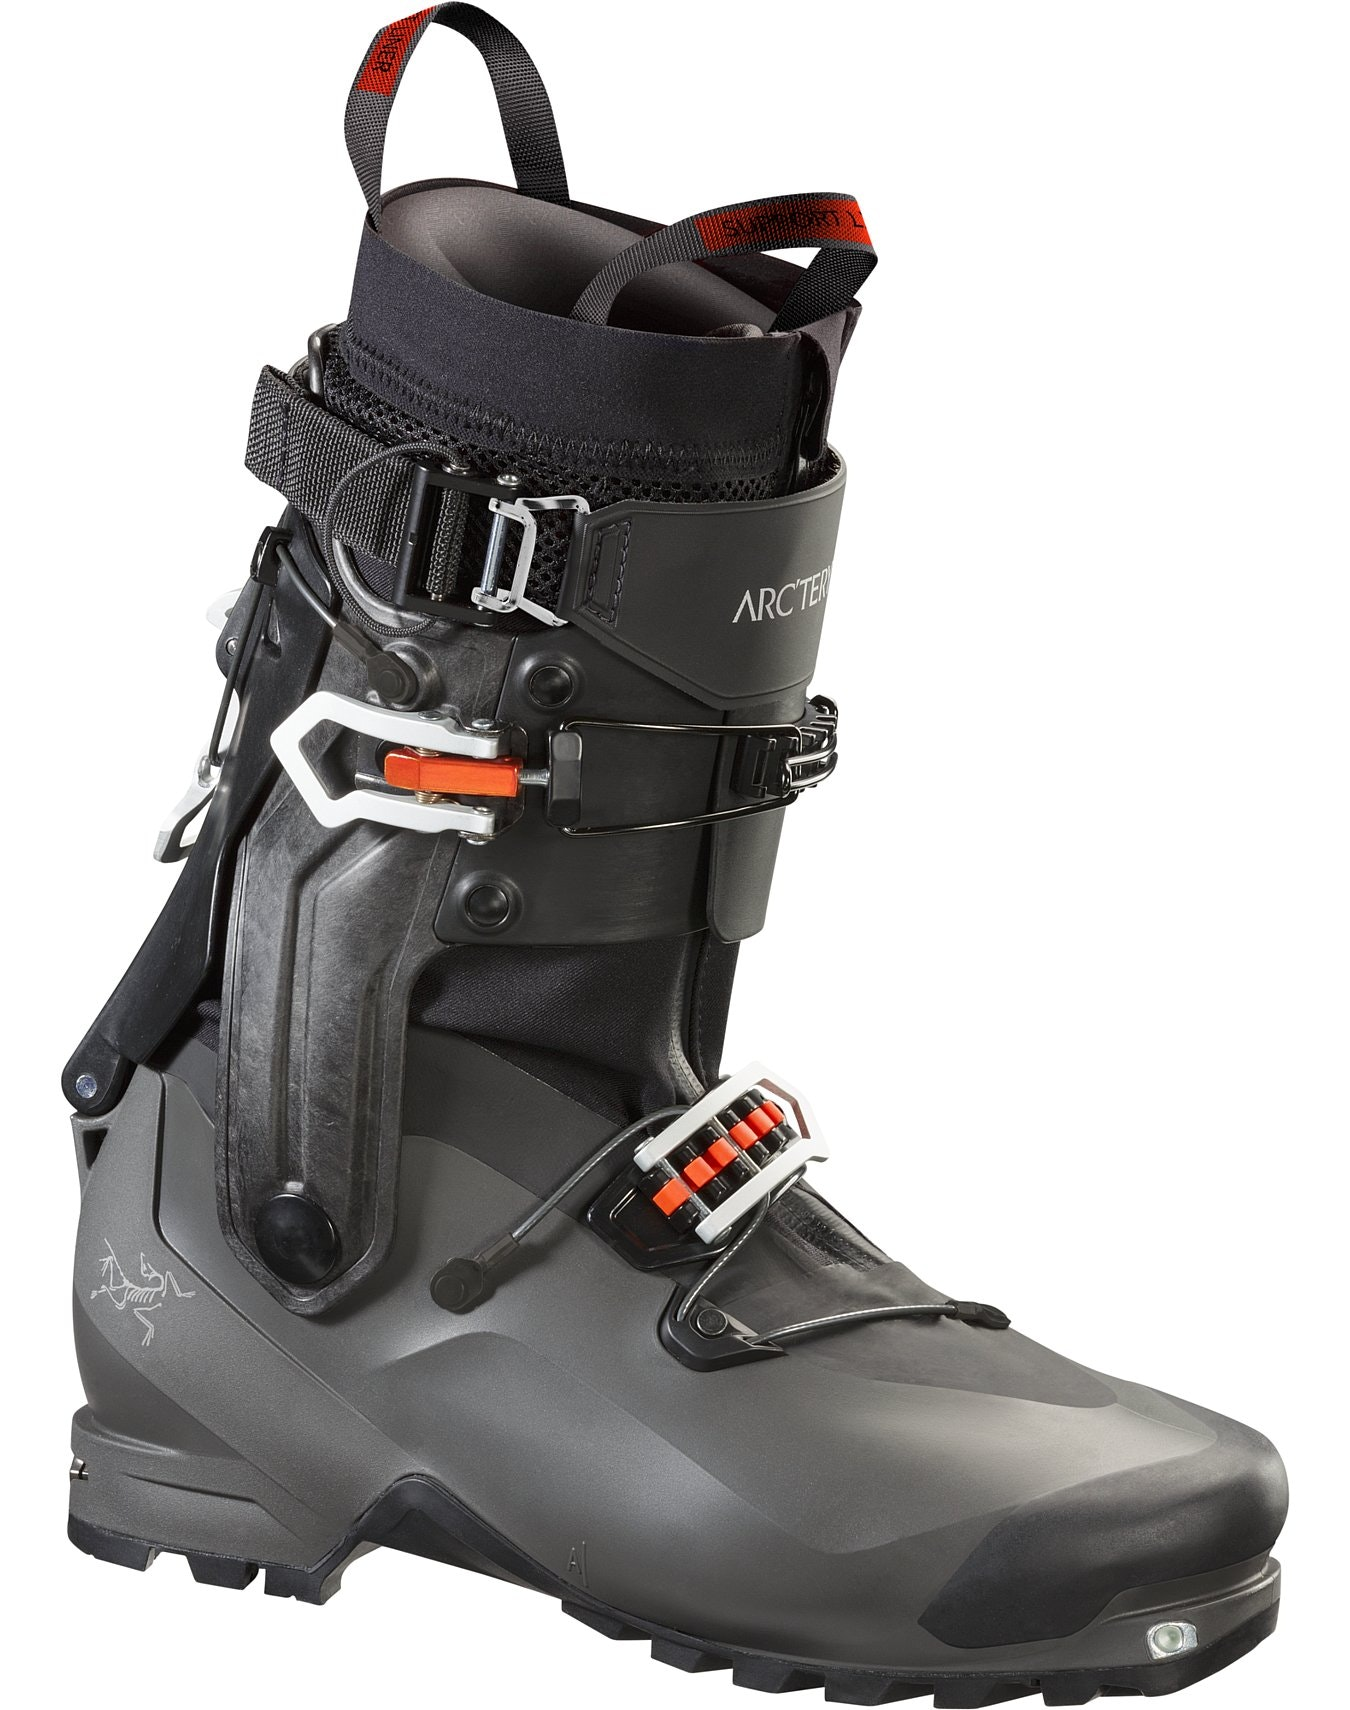 rossignol ski r gray chain category evo product comfortable id page unisex green boots zoom comforter greengray index used name